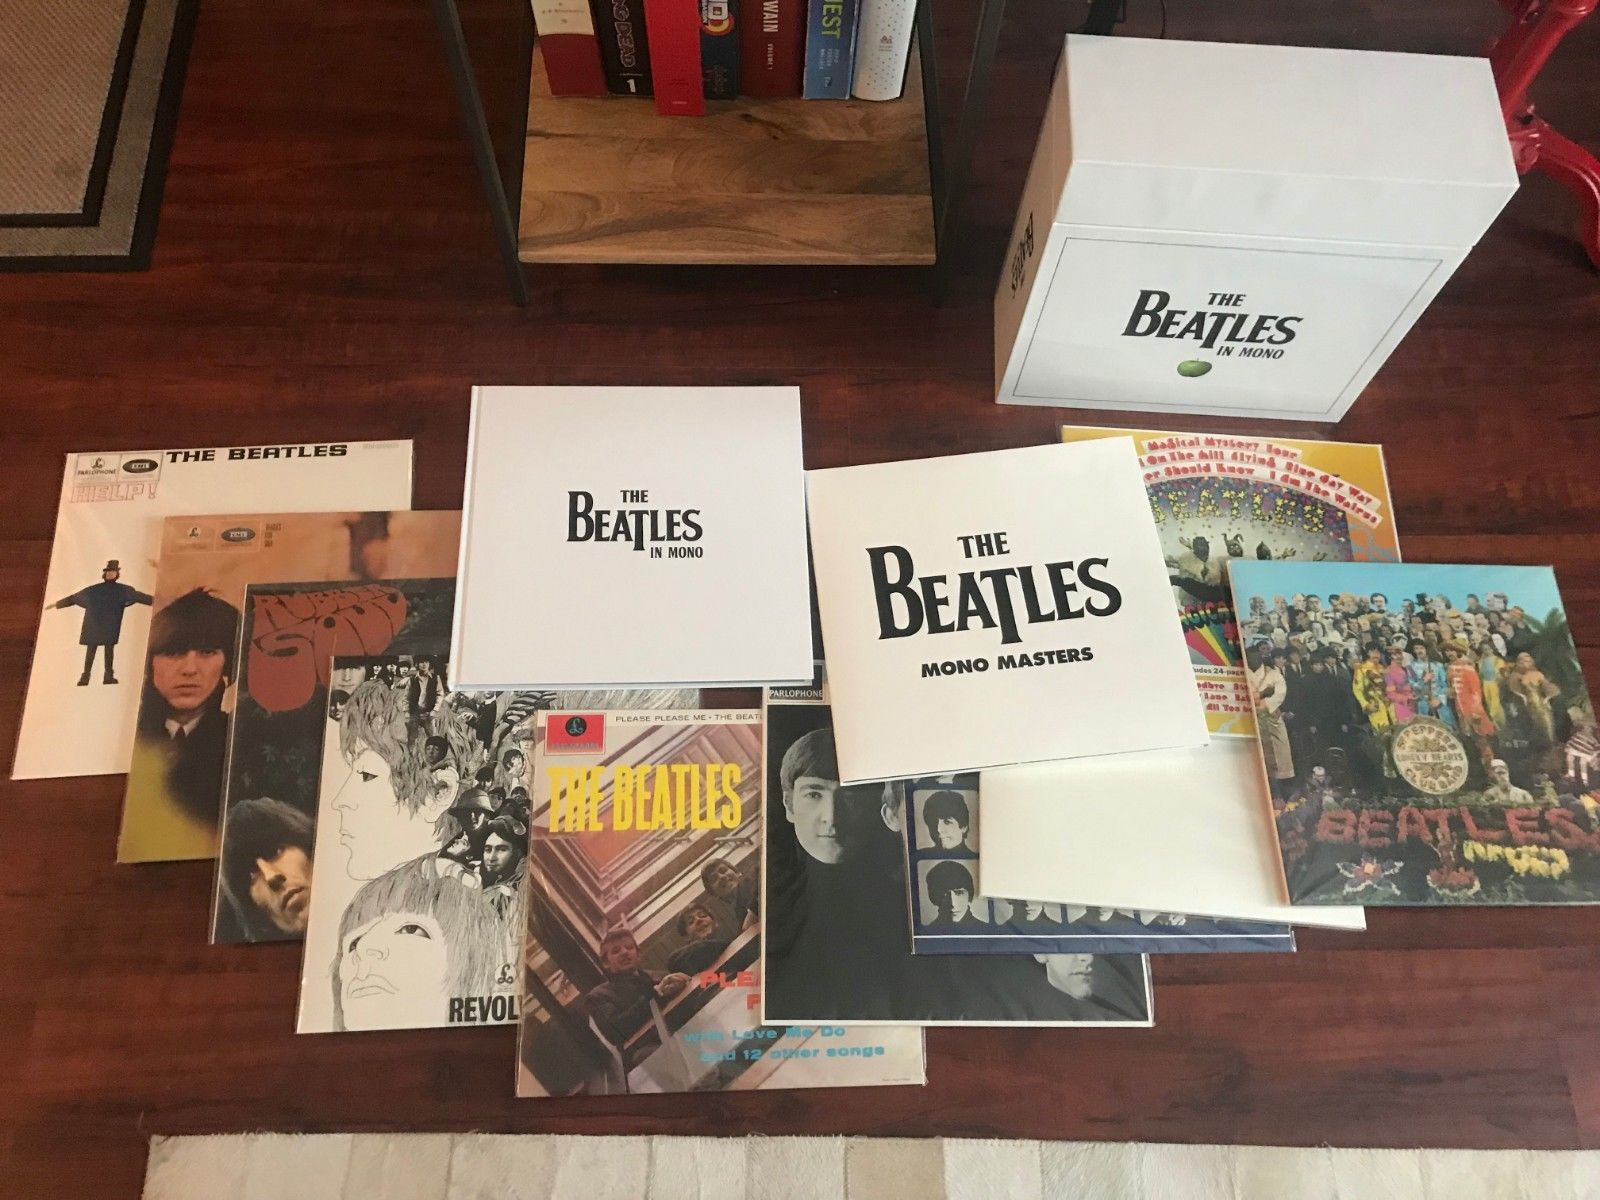 The Beatles in Mono [Vinyl Box Set w/ book] records excellent condition boxset